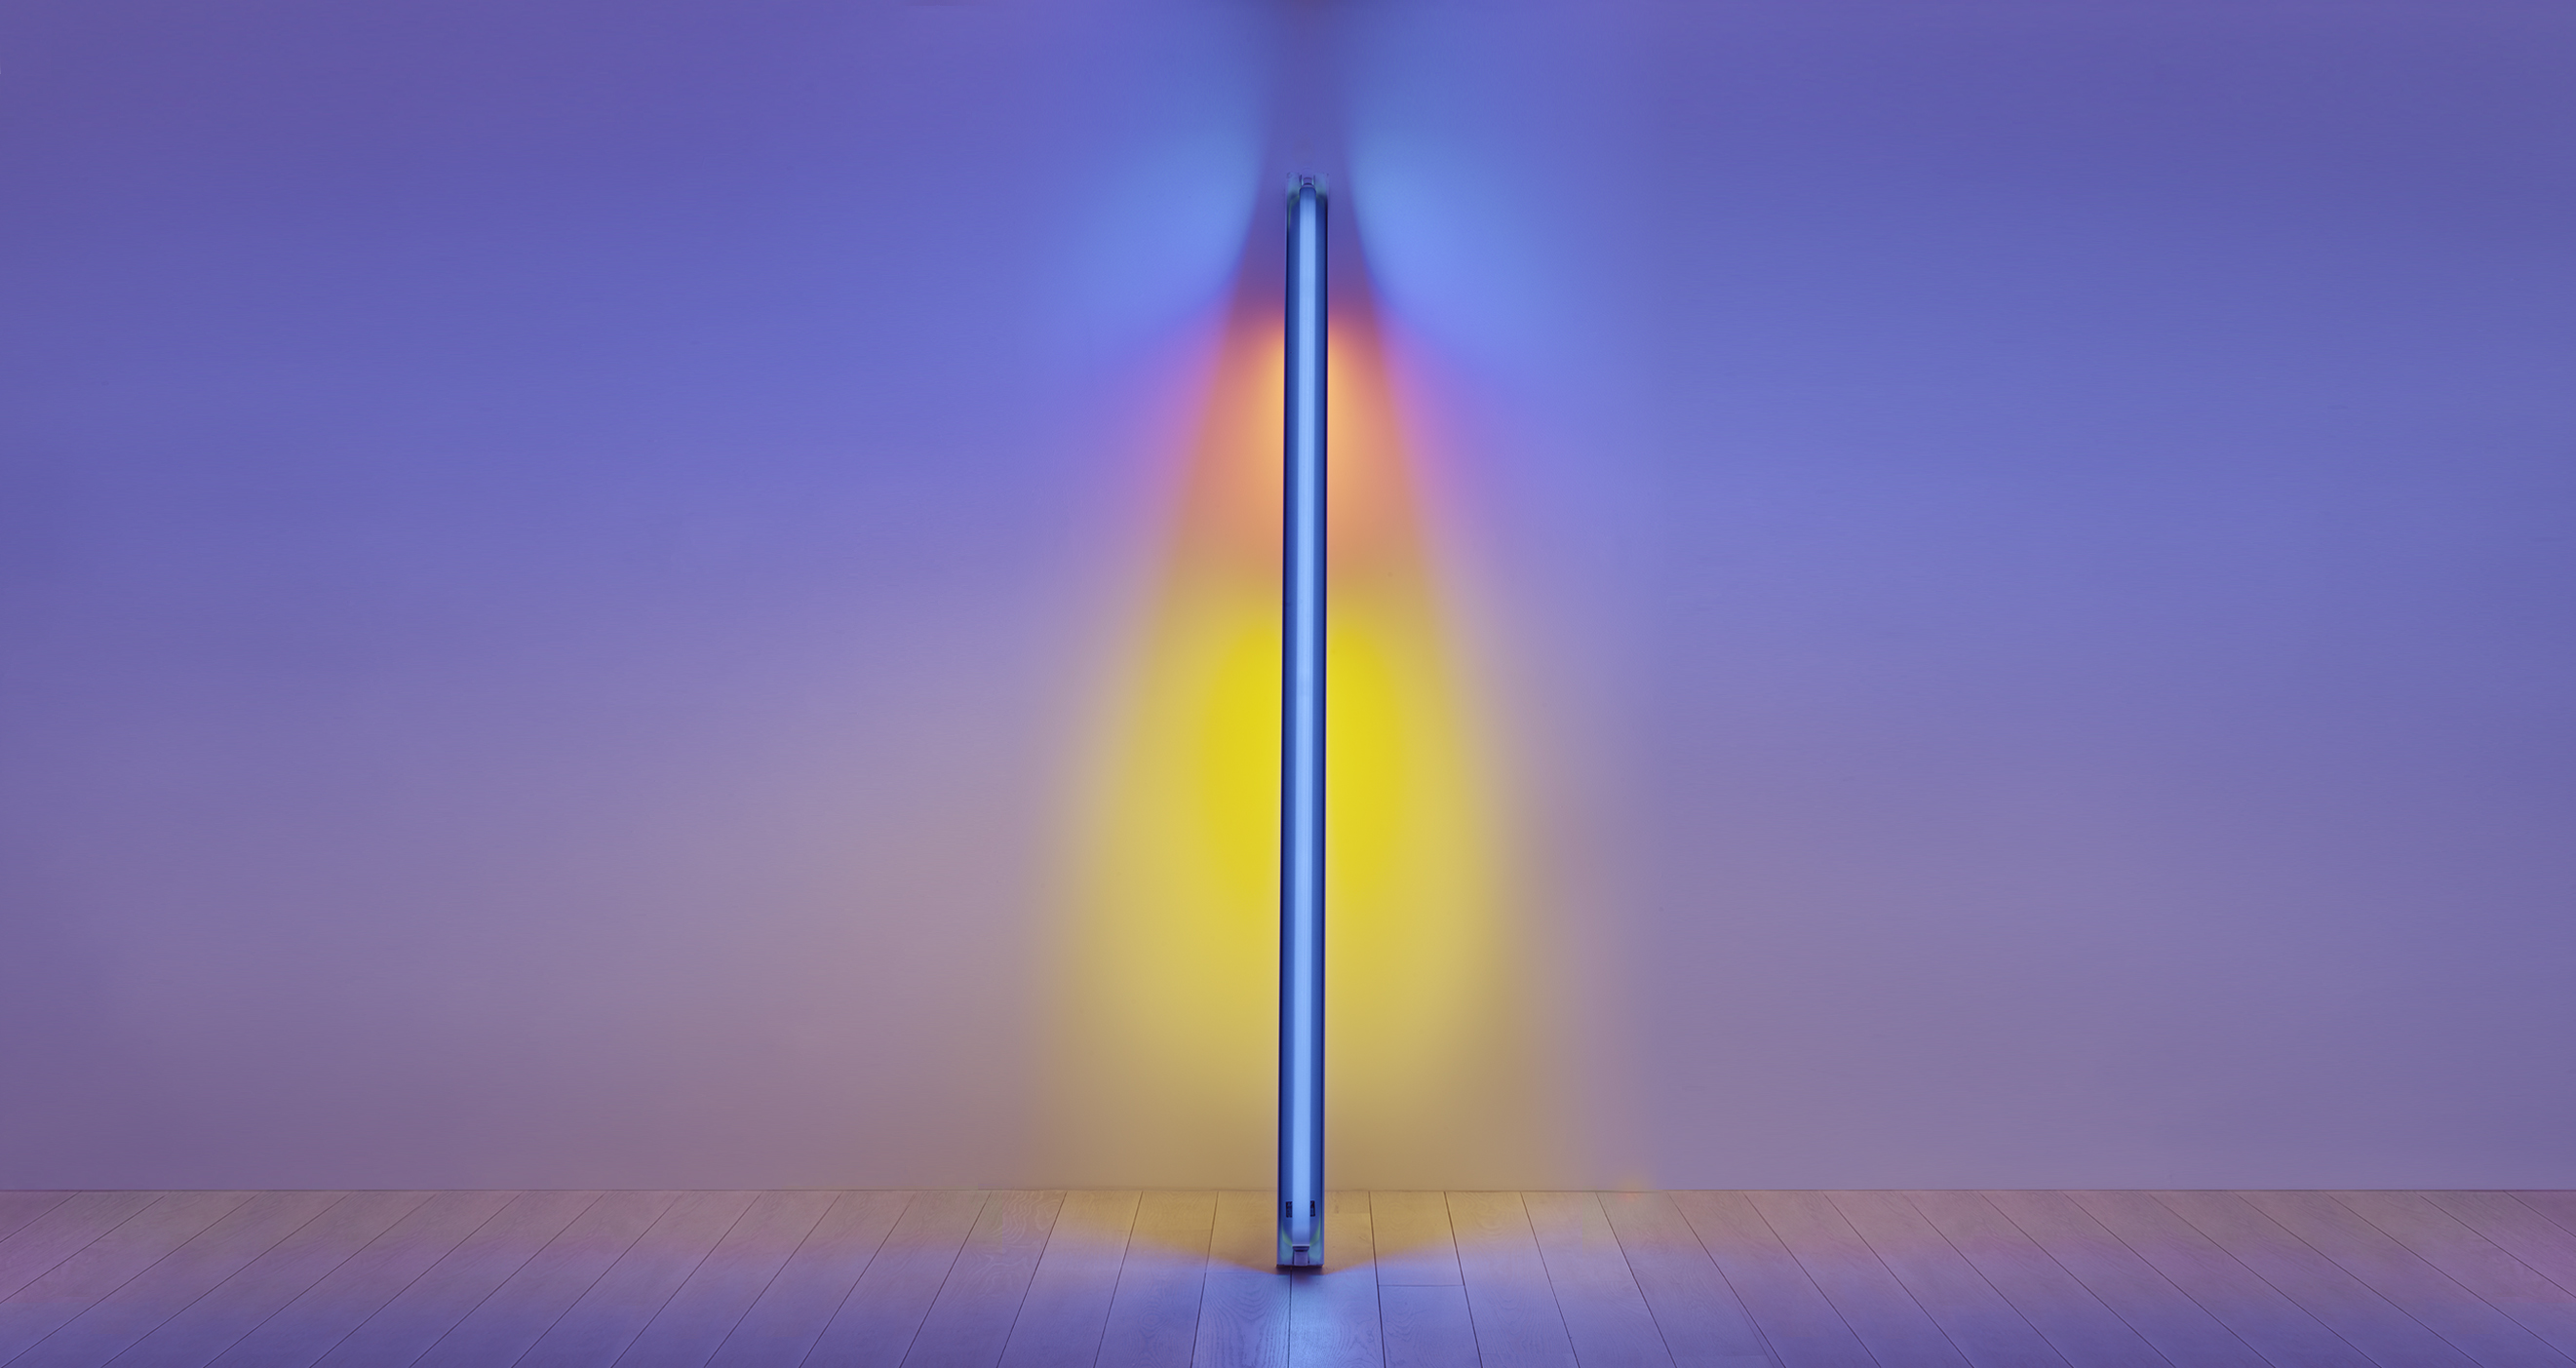 Carl Andre, Dan Flavin, On Kawara, Sol Lewitt: Early Works